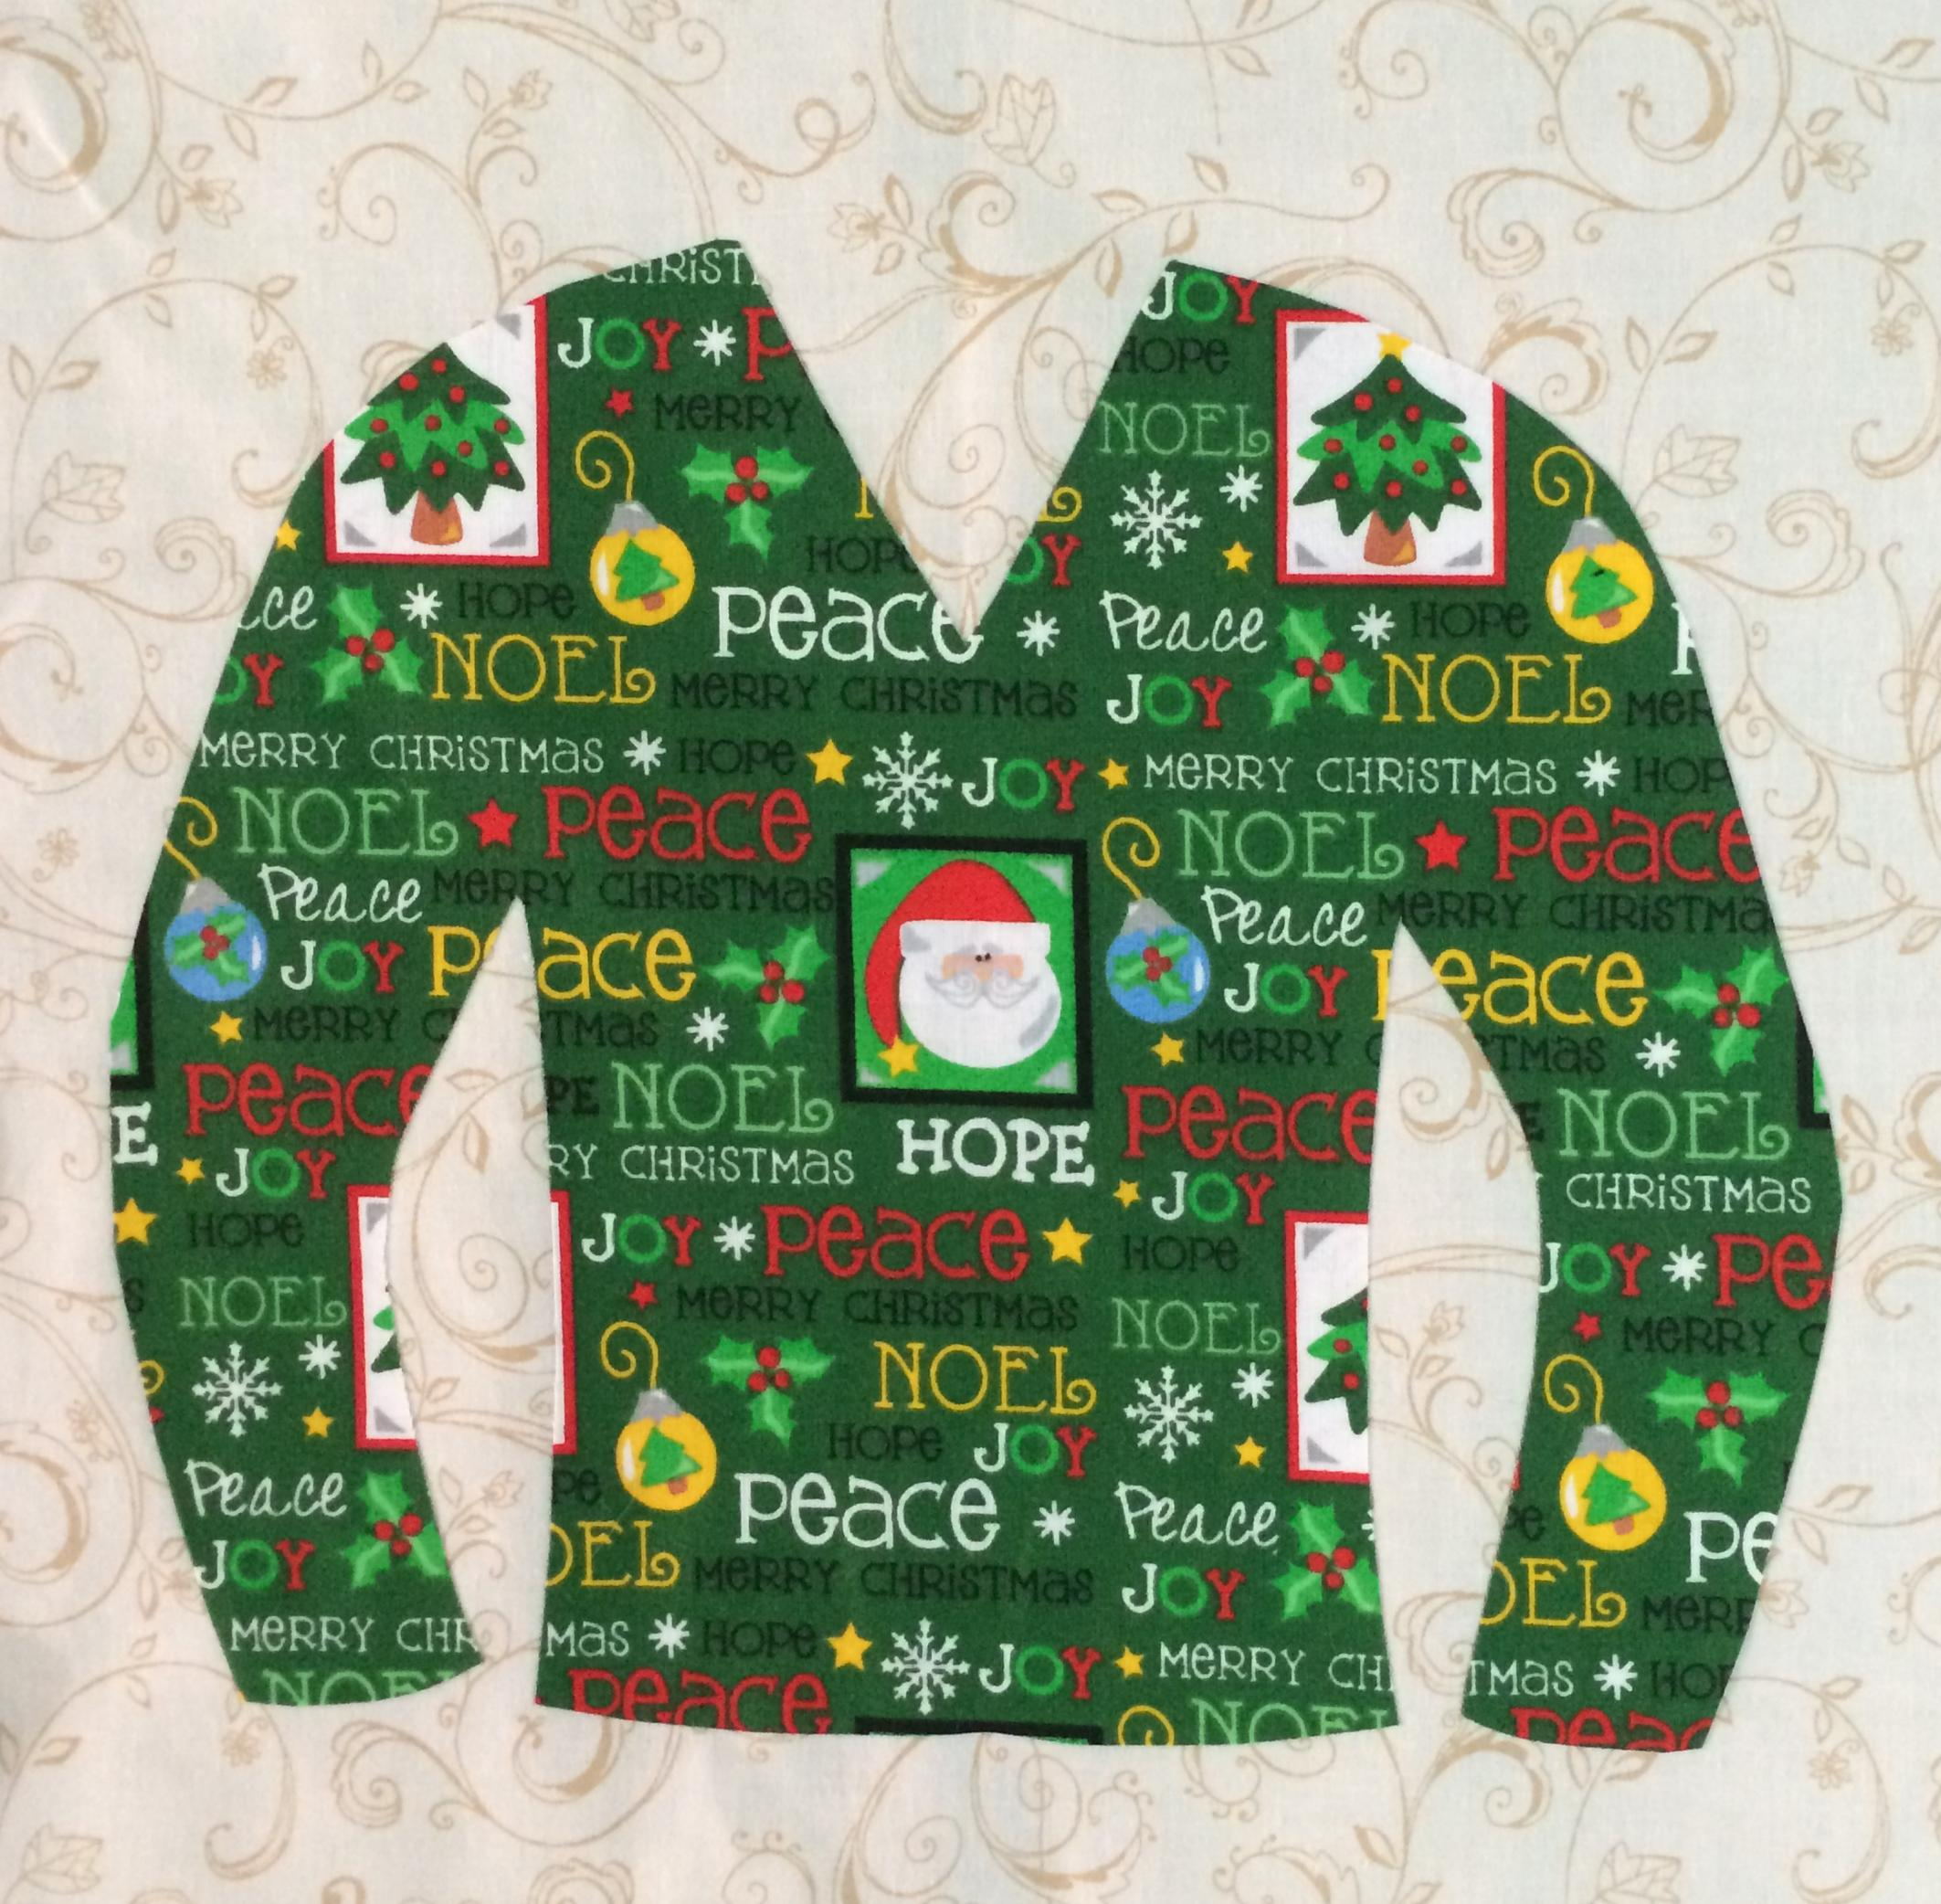 Christmas Sweater Swapscrap Free Quilt Pattern Corrected 61014